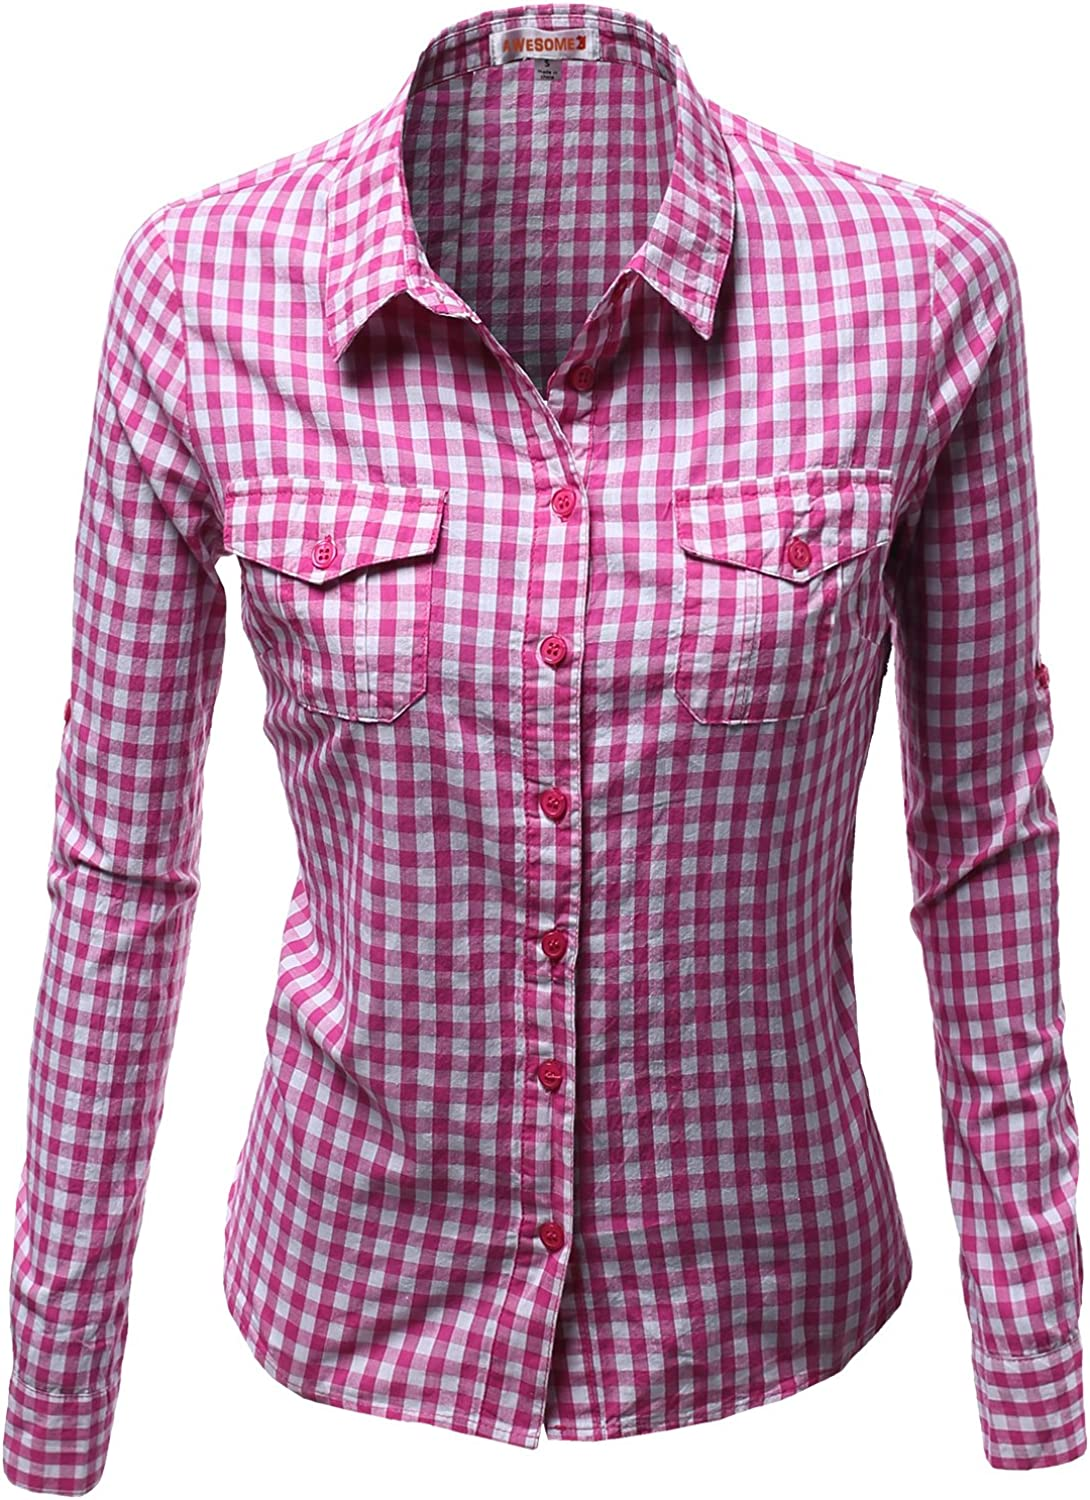 Awesome21 Women's Basic Slim Fit Roll Up Sleeve Plaid Shirt Blouses